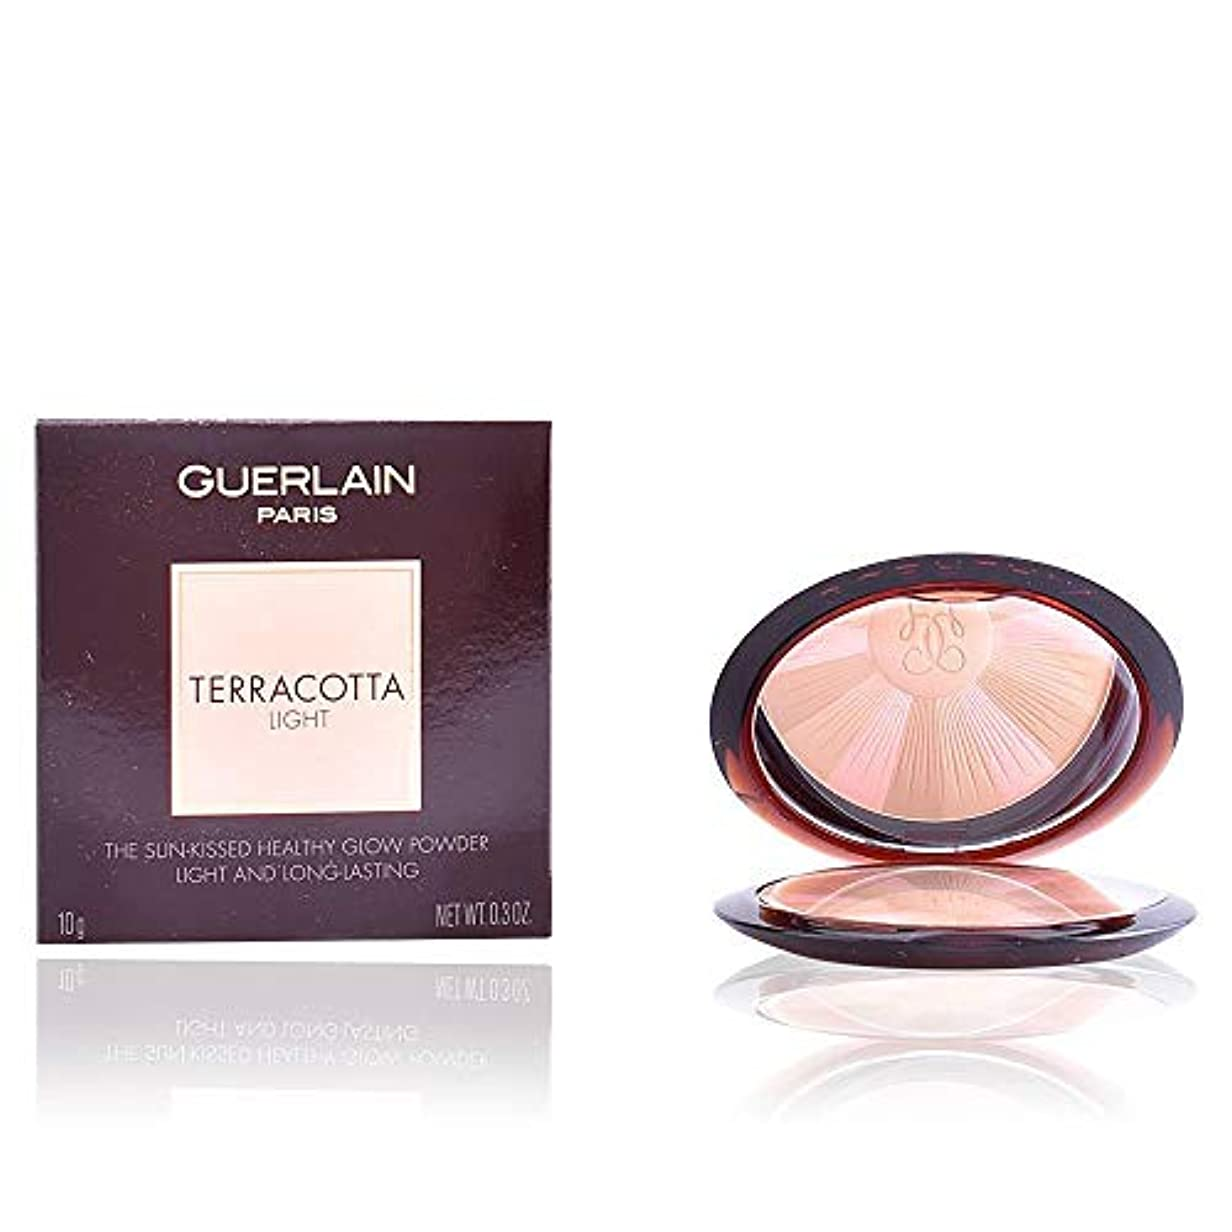 食べる追うグループゲラン Terracotta Light The Sun Kissed Healthy Glow Powder - # 05 Deep Cool 10g/0.3oz並行輸入品